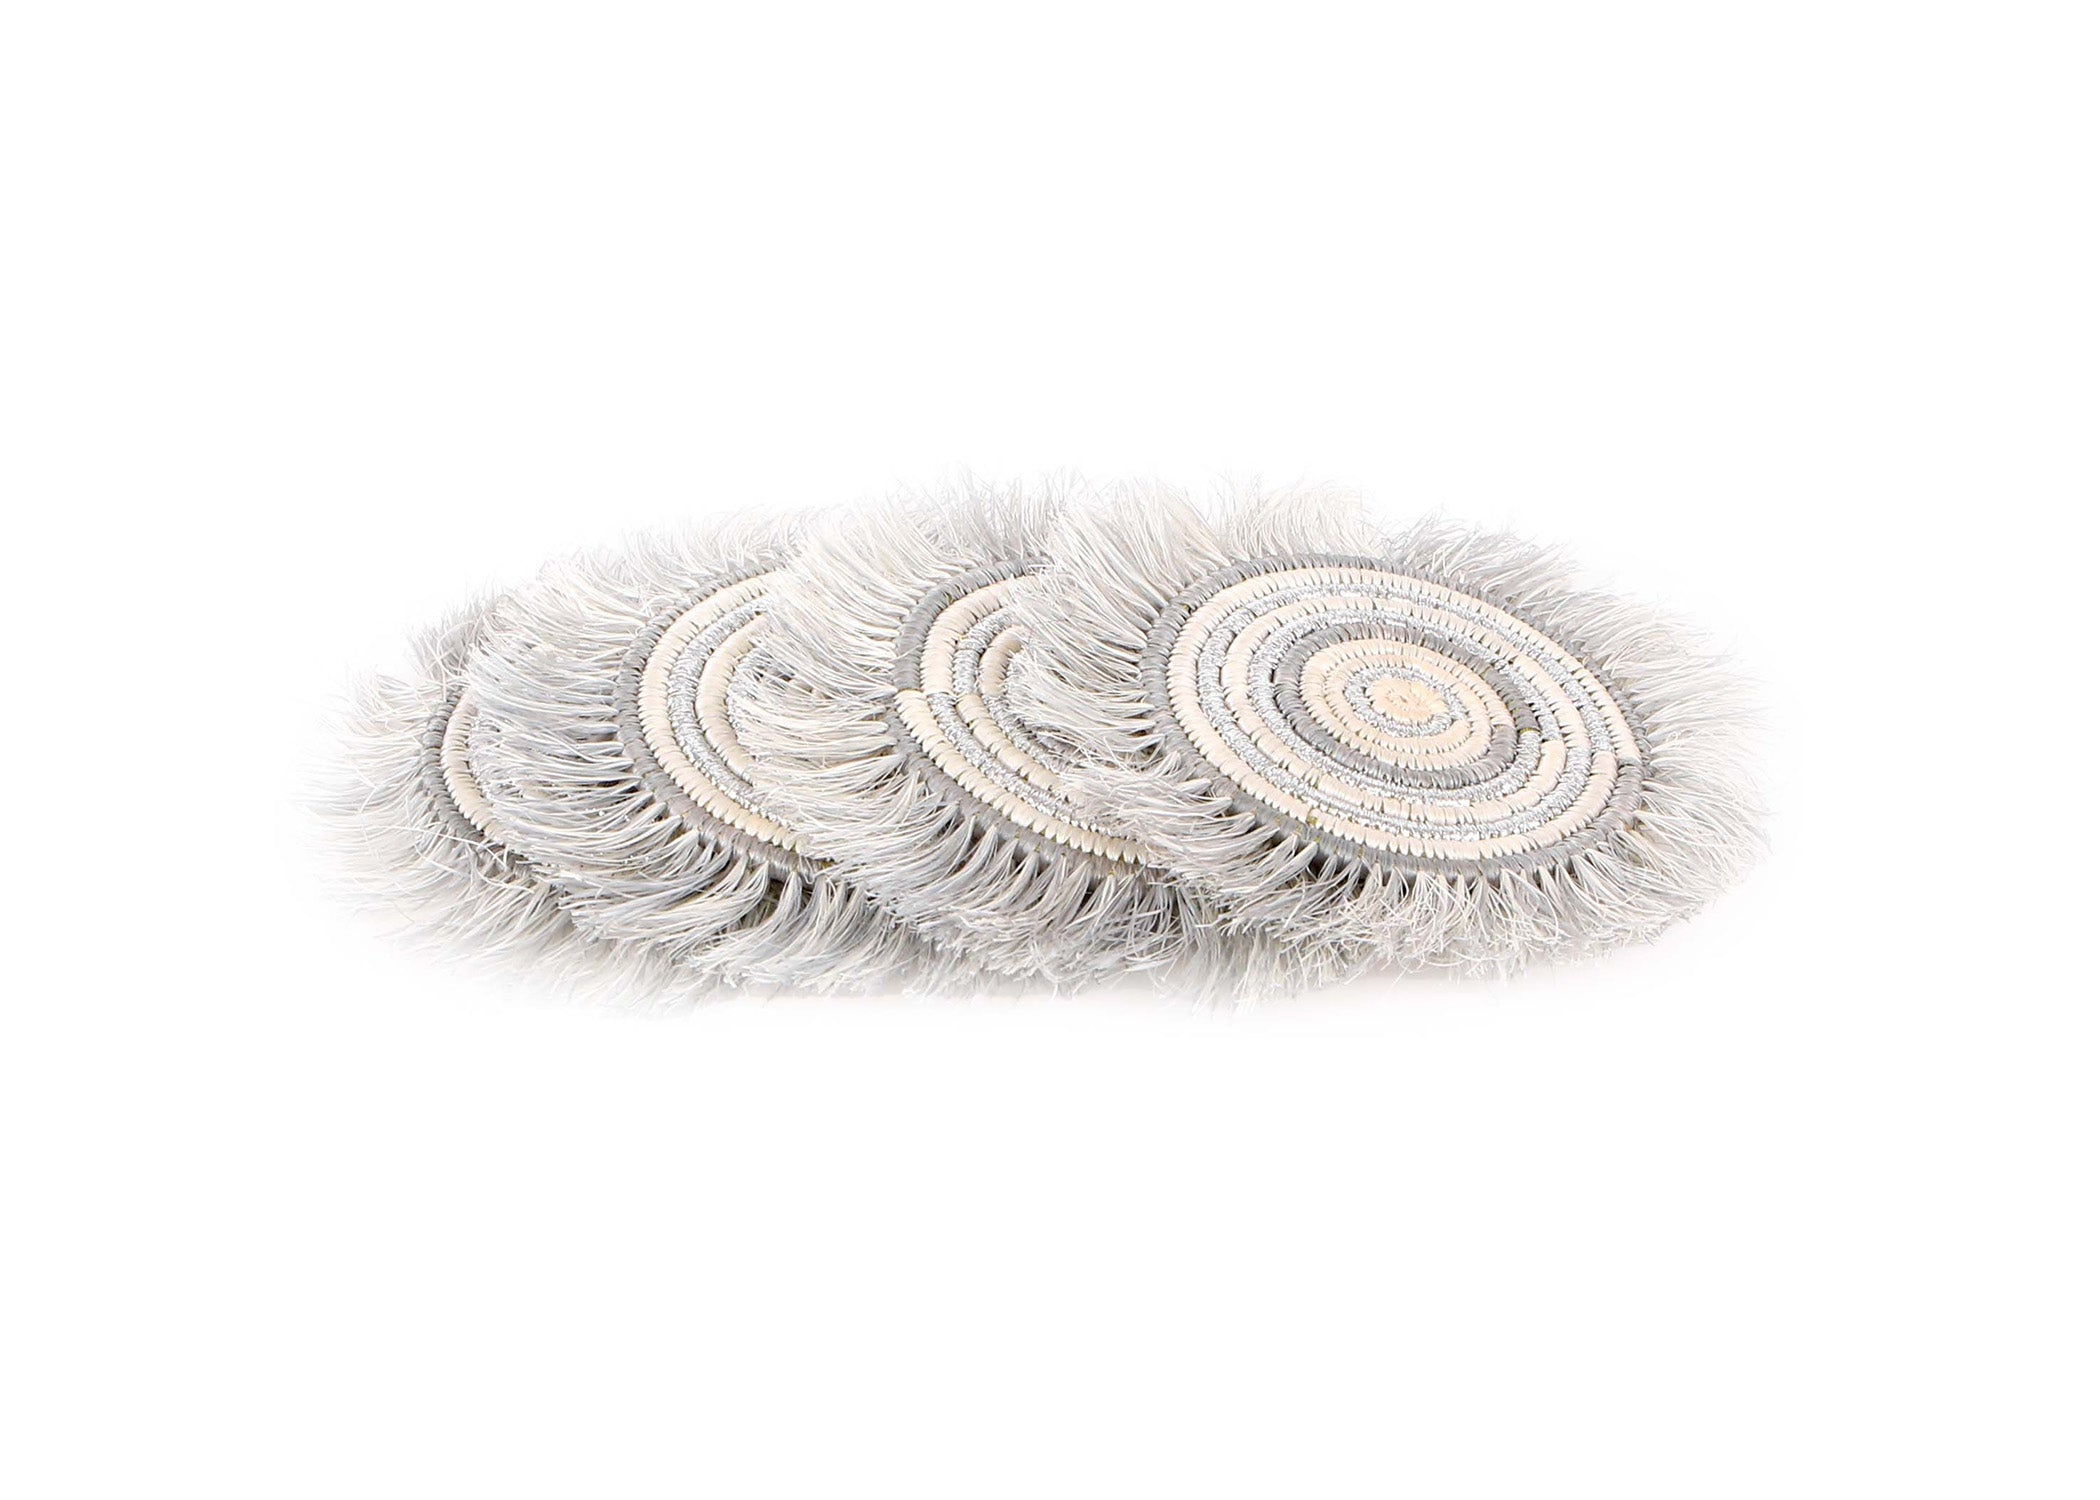 Silver Metallic Geo Fringed Coasters, Set of 4 - KAZI - Artisan made high quality home decor and wall art